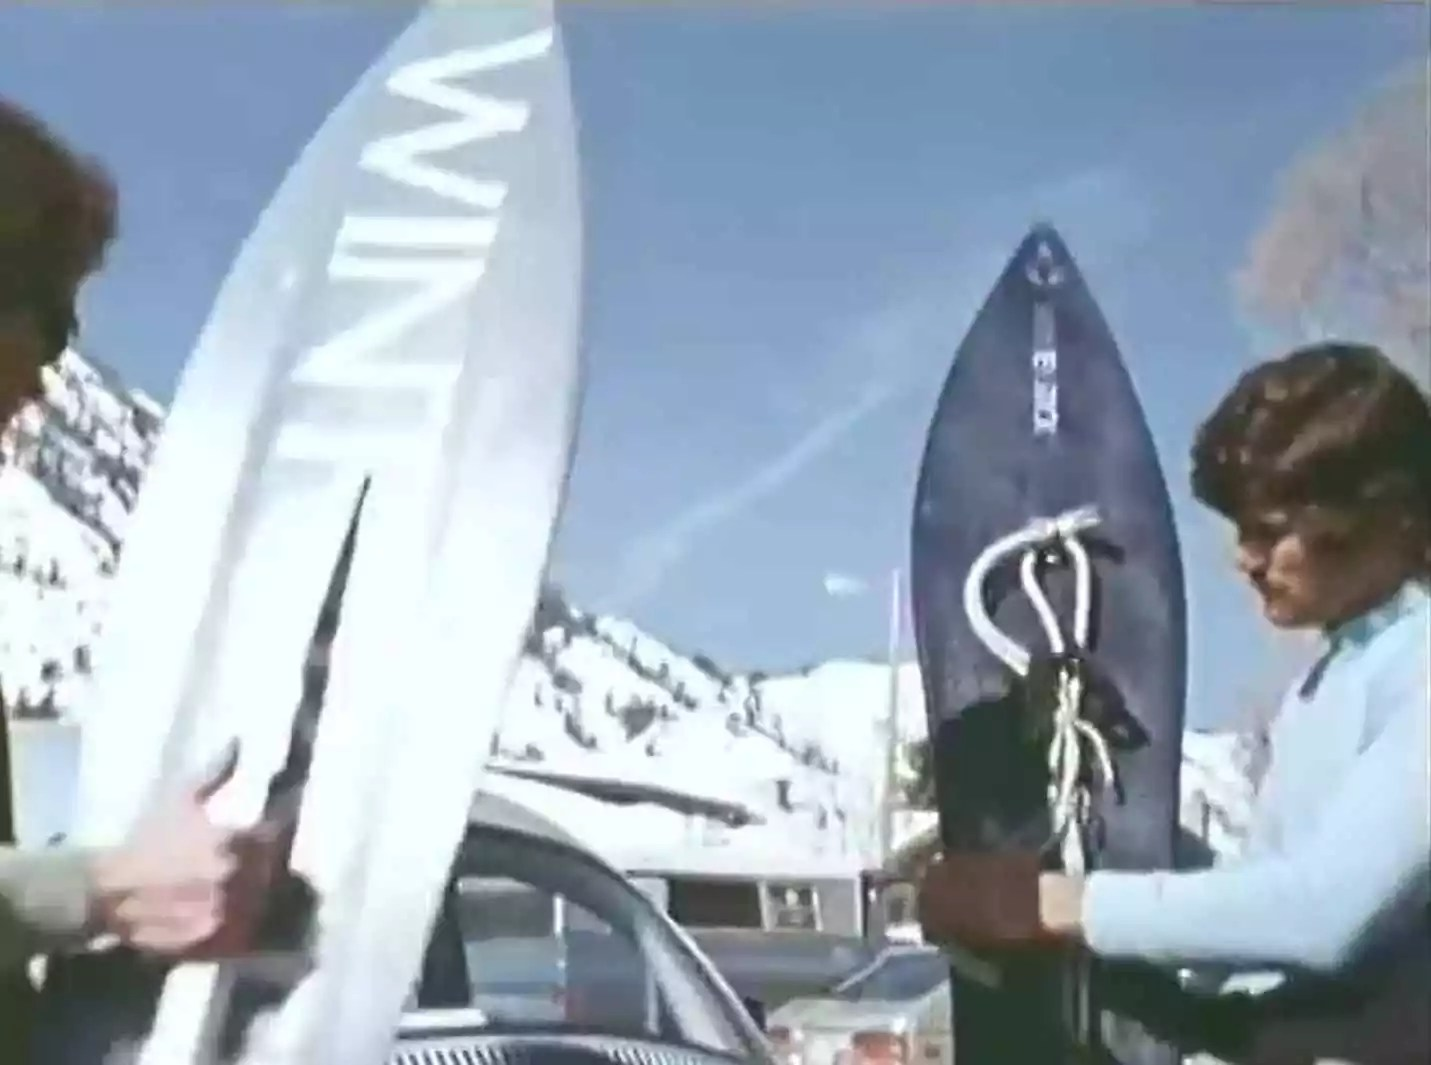 In the LATE 70S-1970s Snowboarding